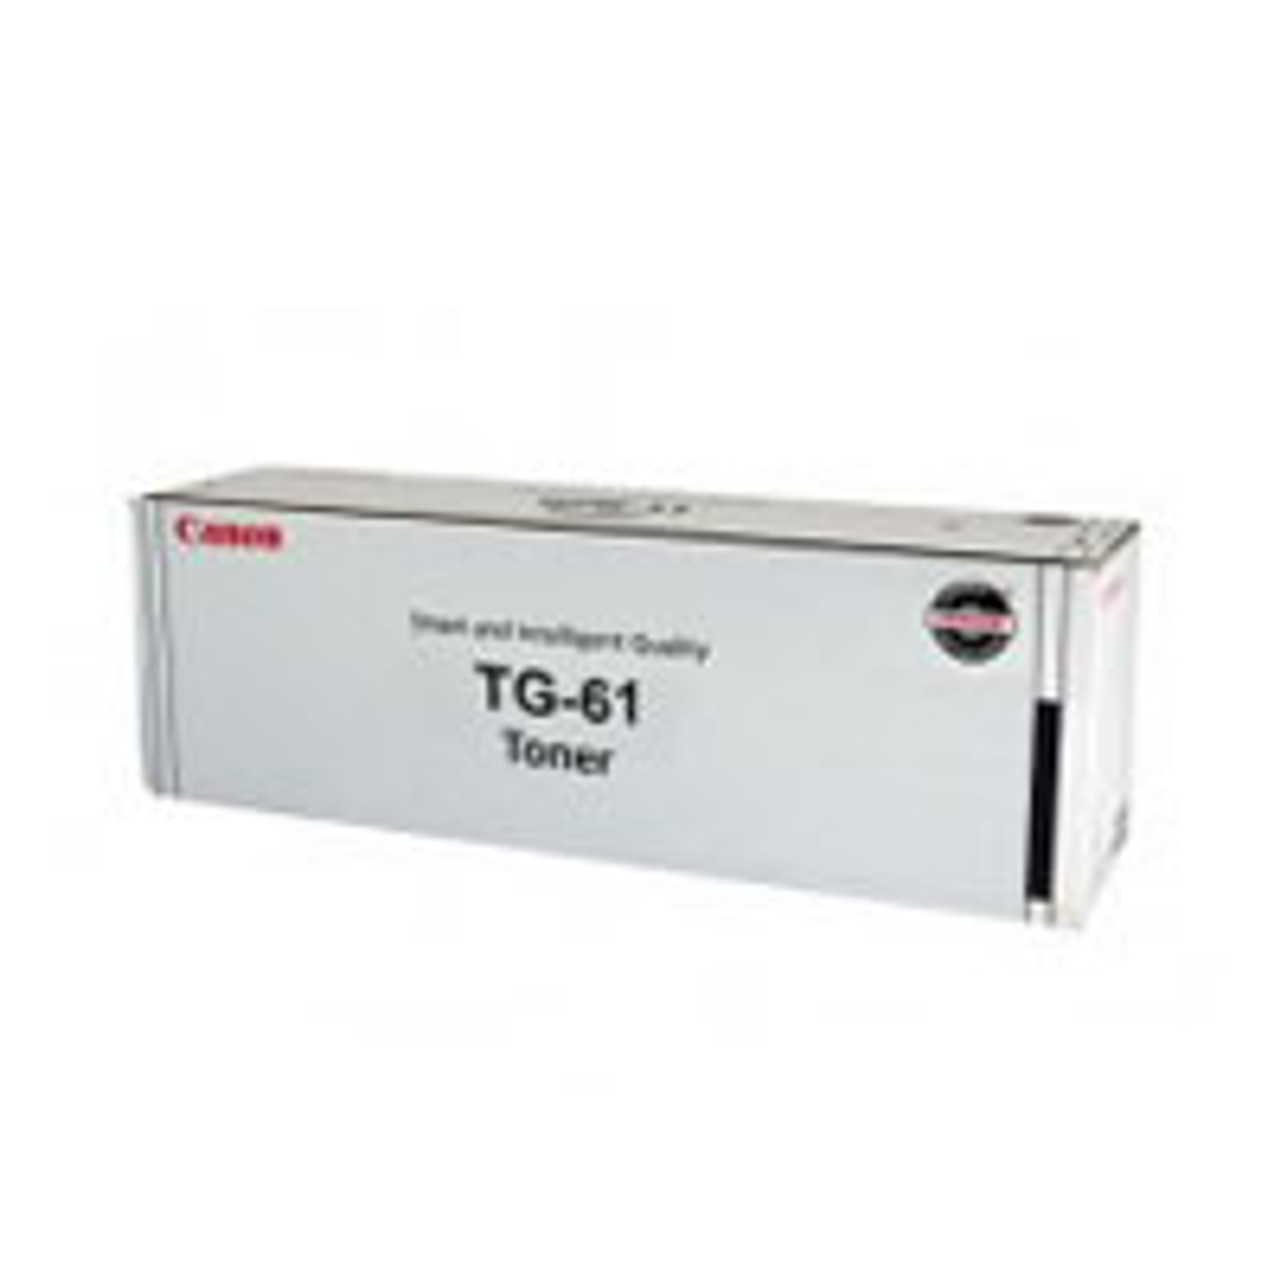 Image for Canon TG61 Black Toner 15,100 pages Black CX Computer Superstore